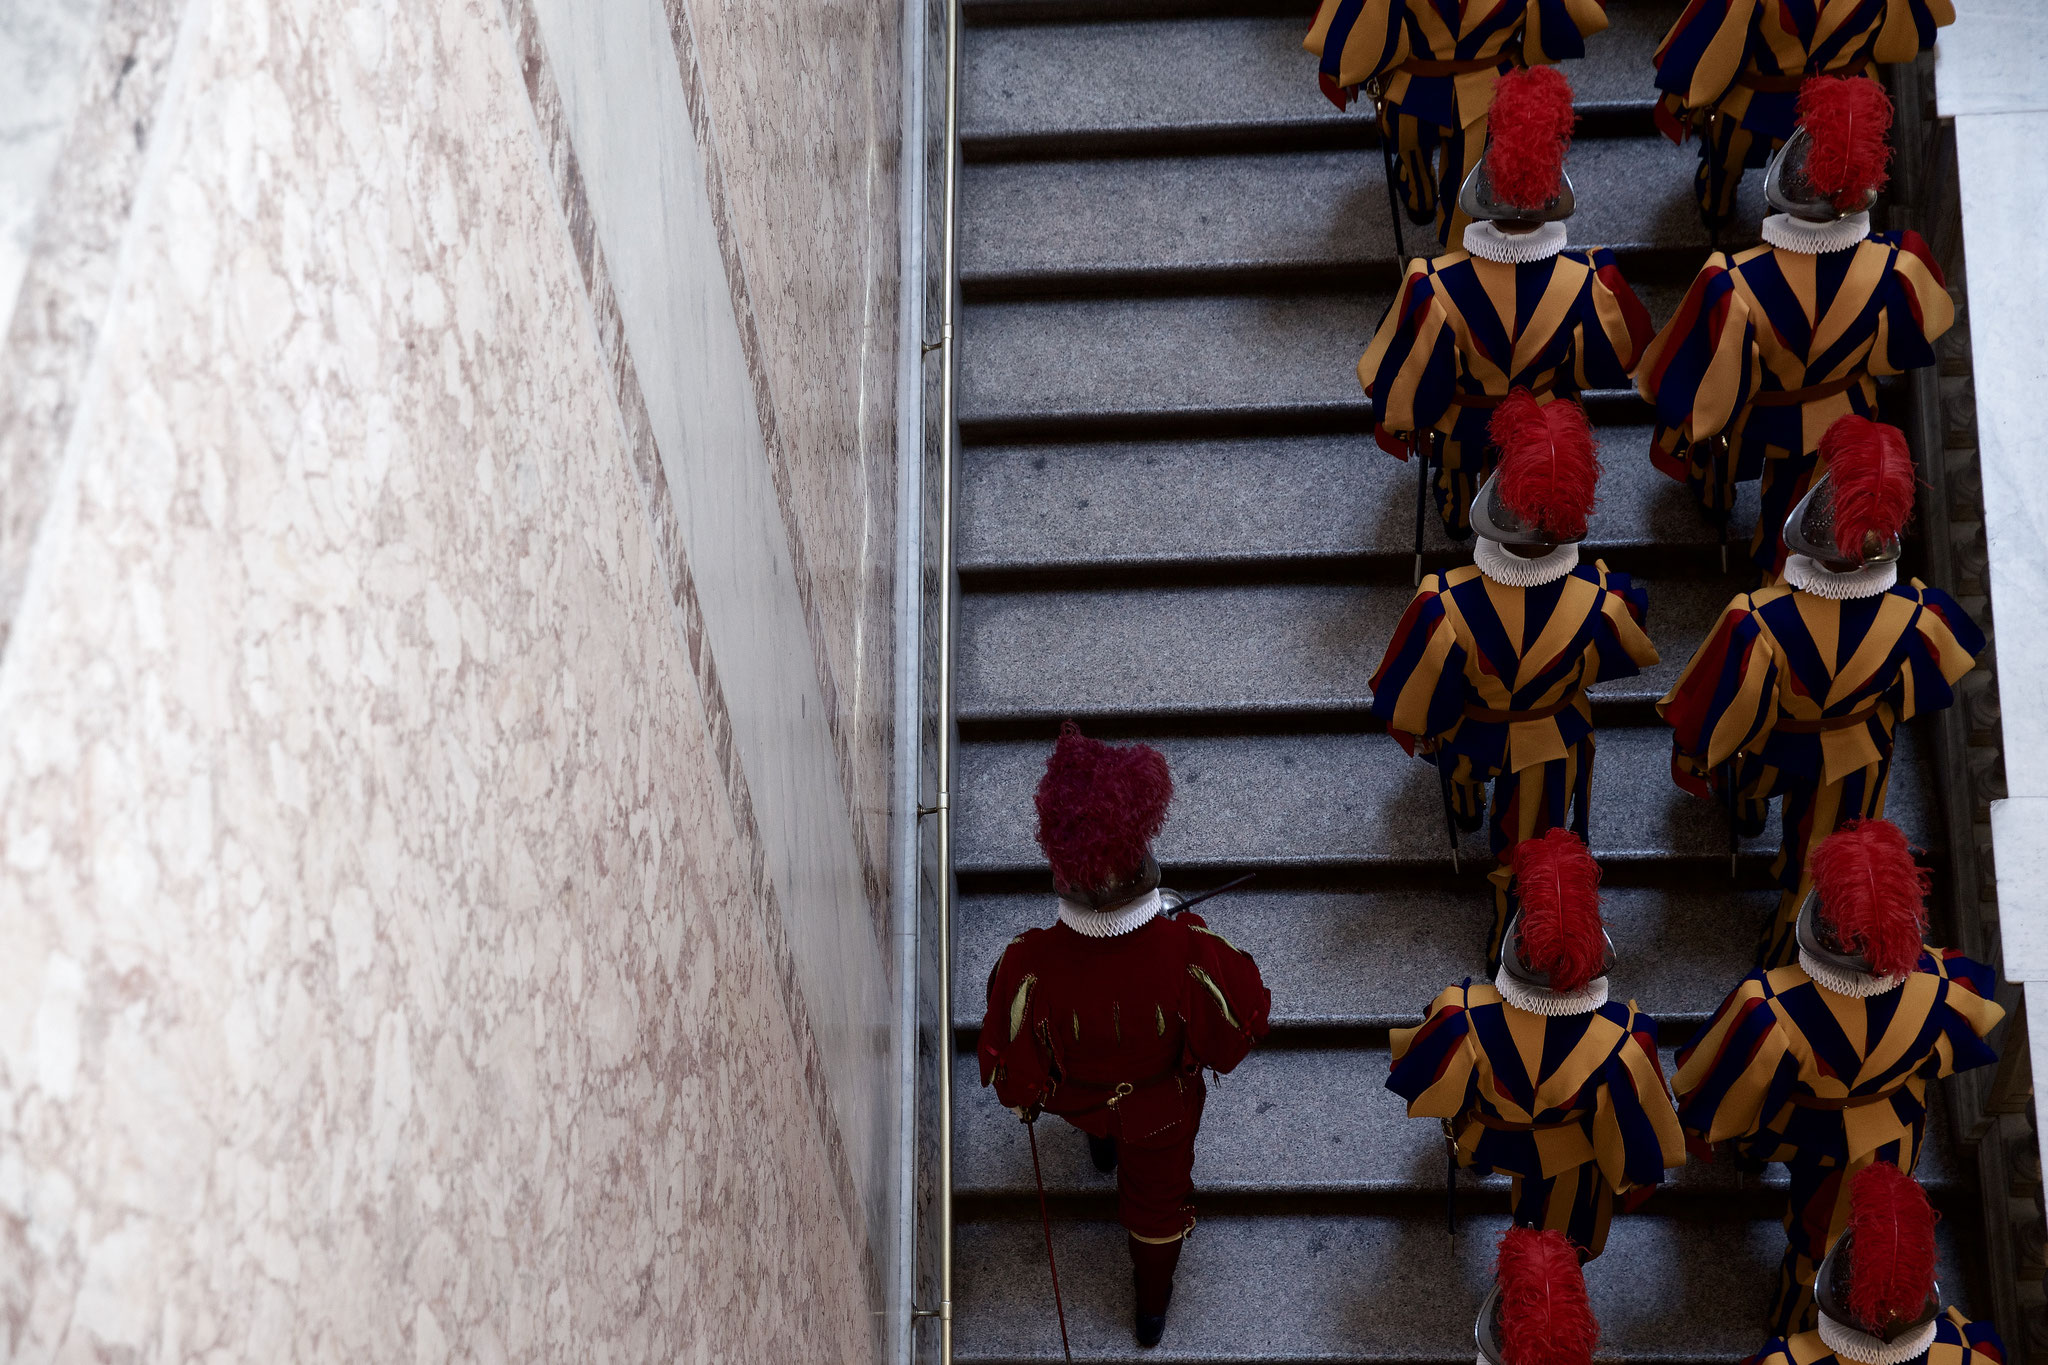 Marching stairs inside the Papal Palace.